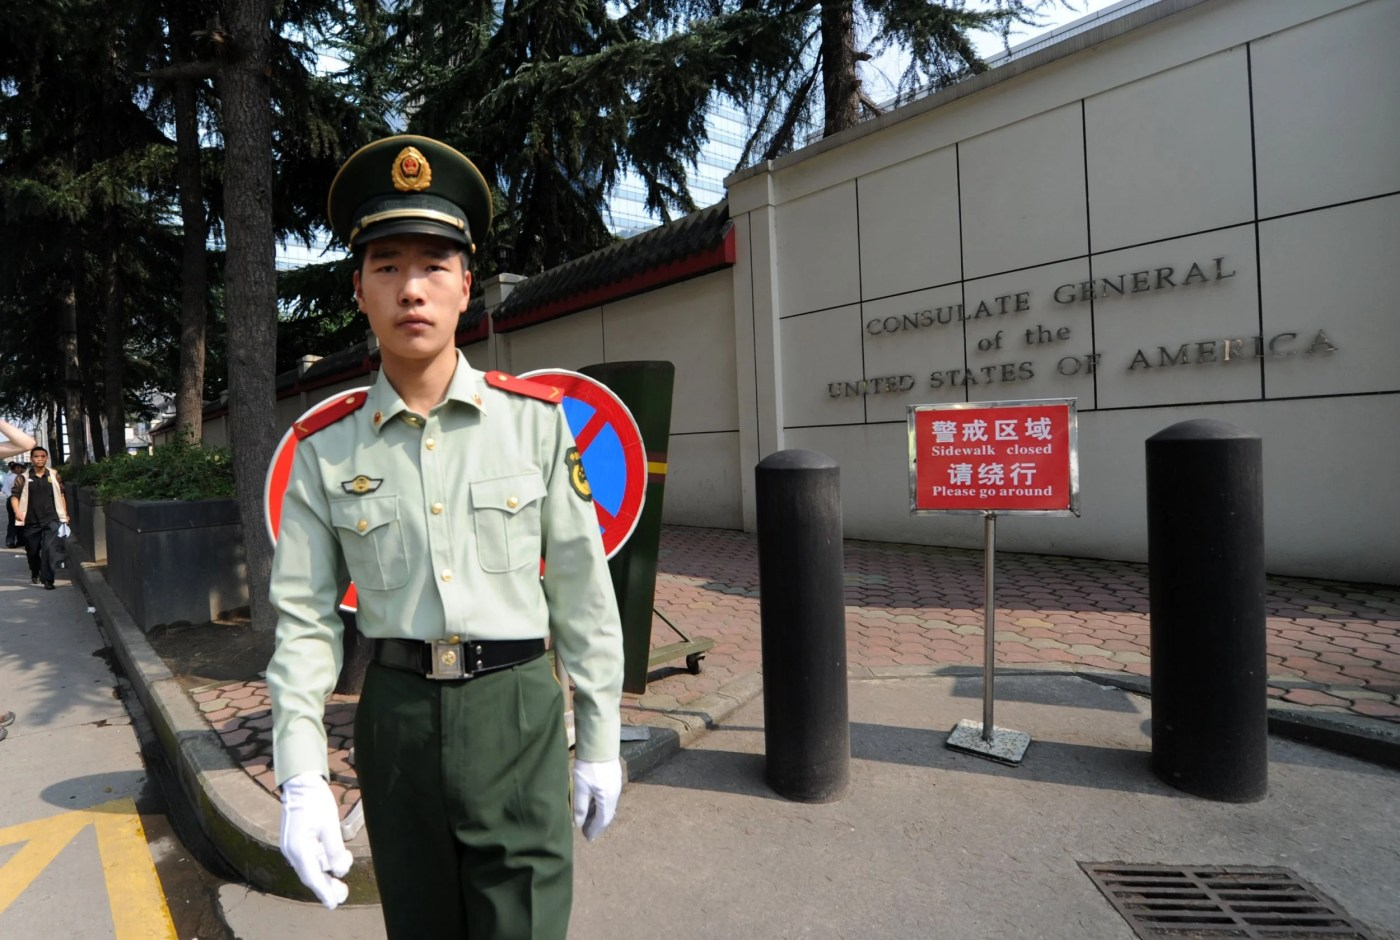 File: a Chinese paramilitary policeman stands guard at the entrance of the US consulate in Chengdu. China says it has revoked the licence for the consulate in retaliation for the closure of China's Houston consulate earlier this week